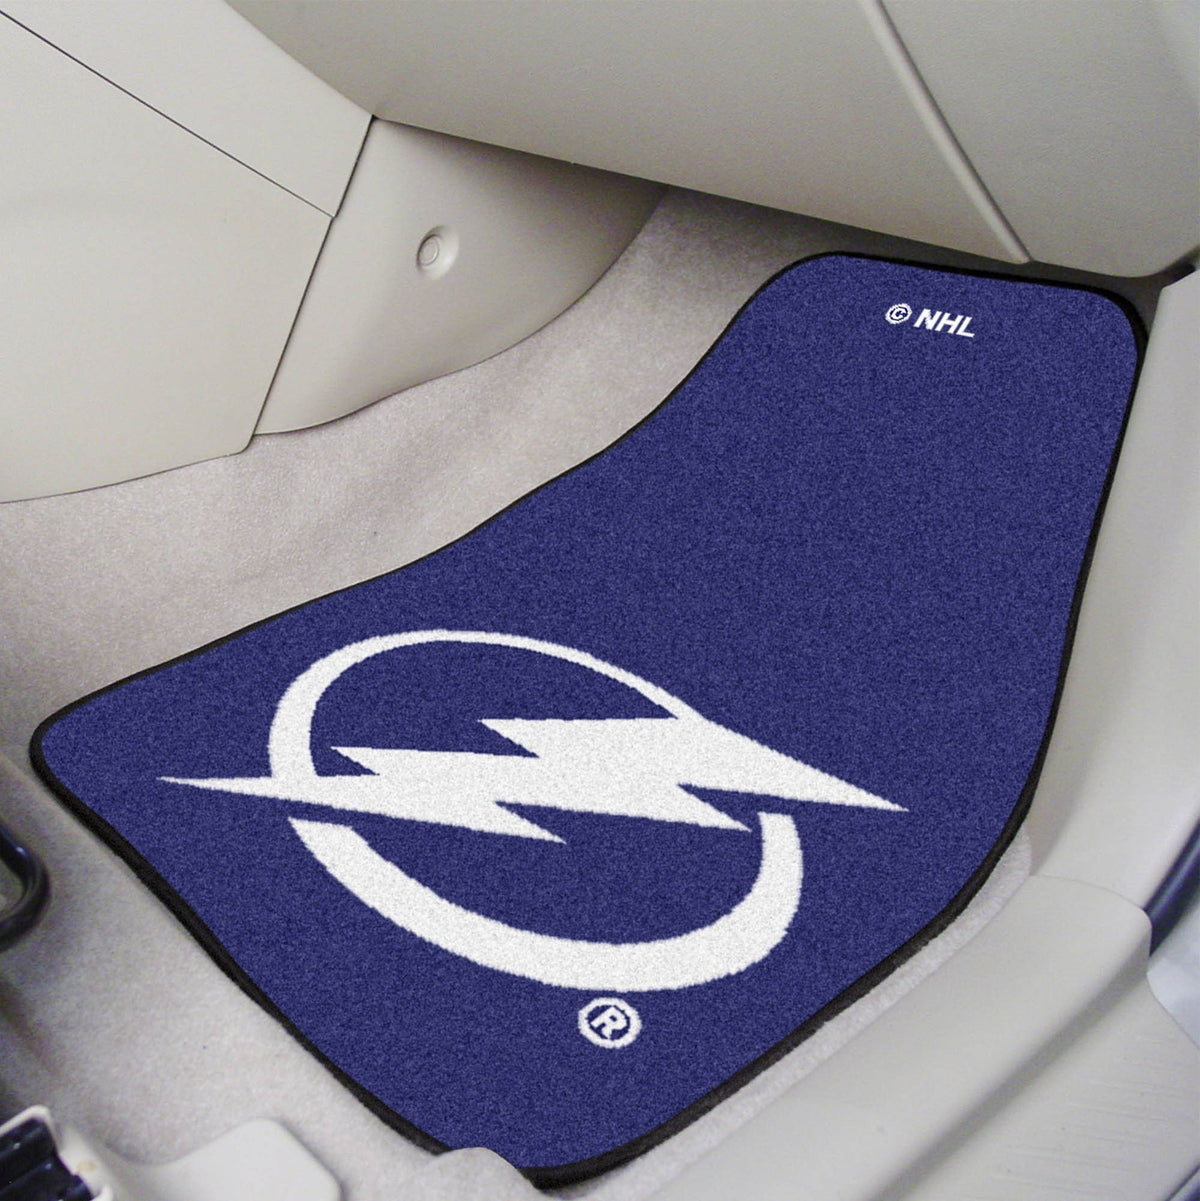 NHL - Carpet Car Mat, 2-Piece Set NHL Mats, Front Car Mats, 2-pc Carpet Car Mat Set, NHL, Auto Fan Mats Tampa Bay Lightning